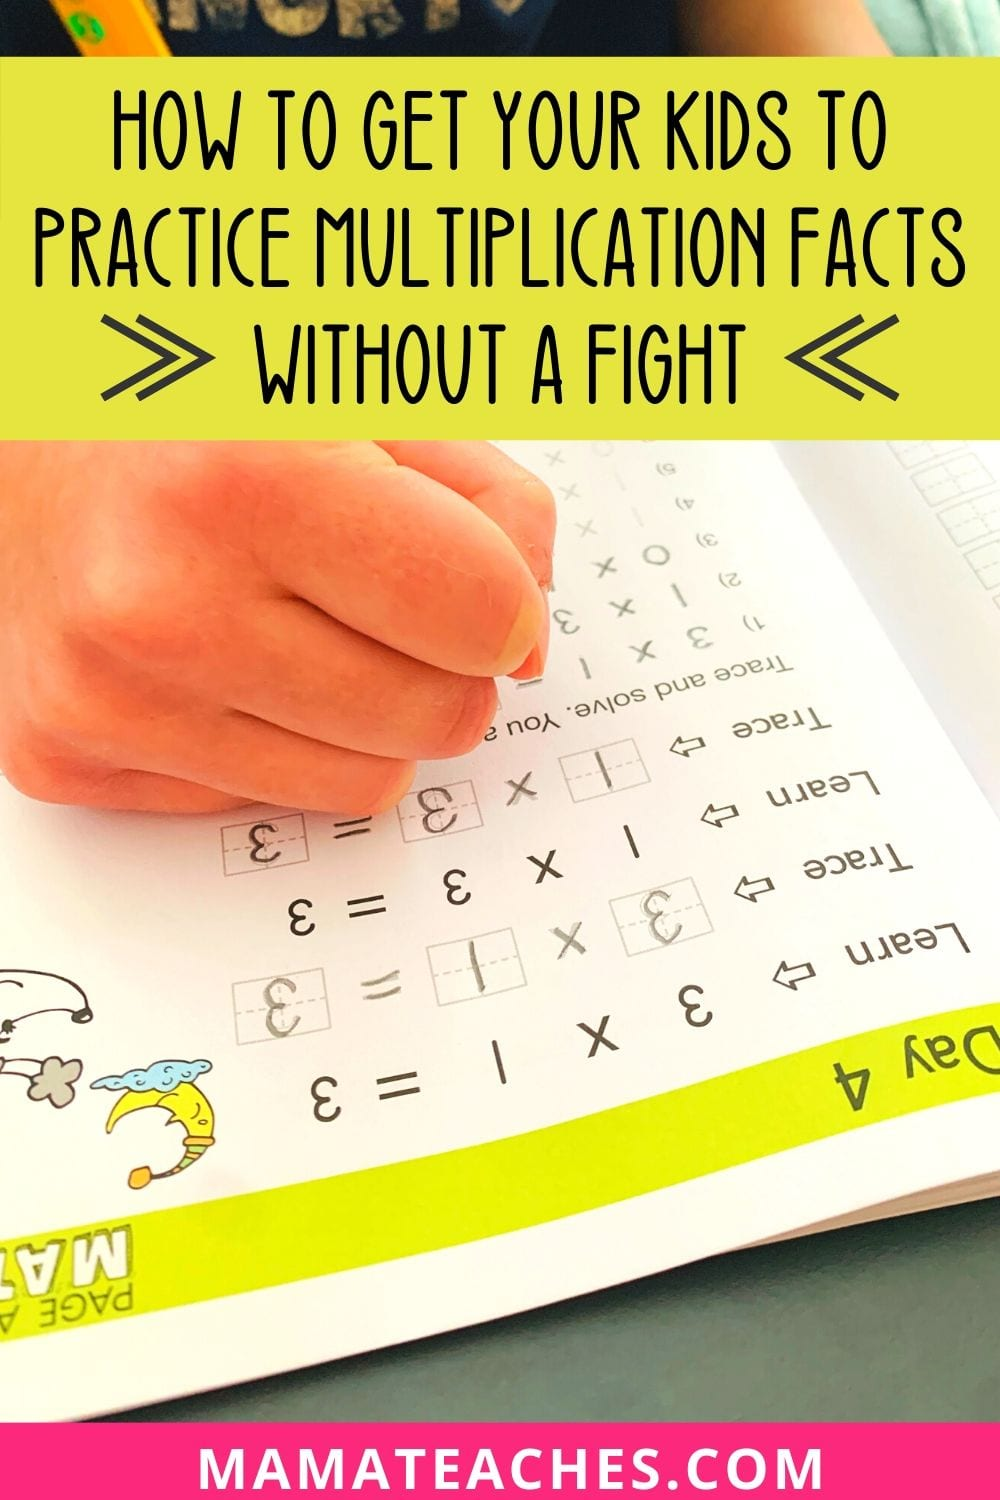 How to Get Your Kids to Practice Multiplication Facts Without a Fight